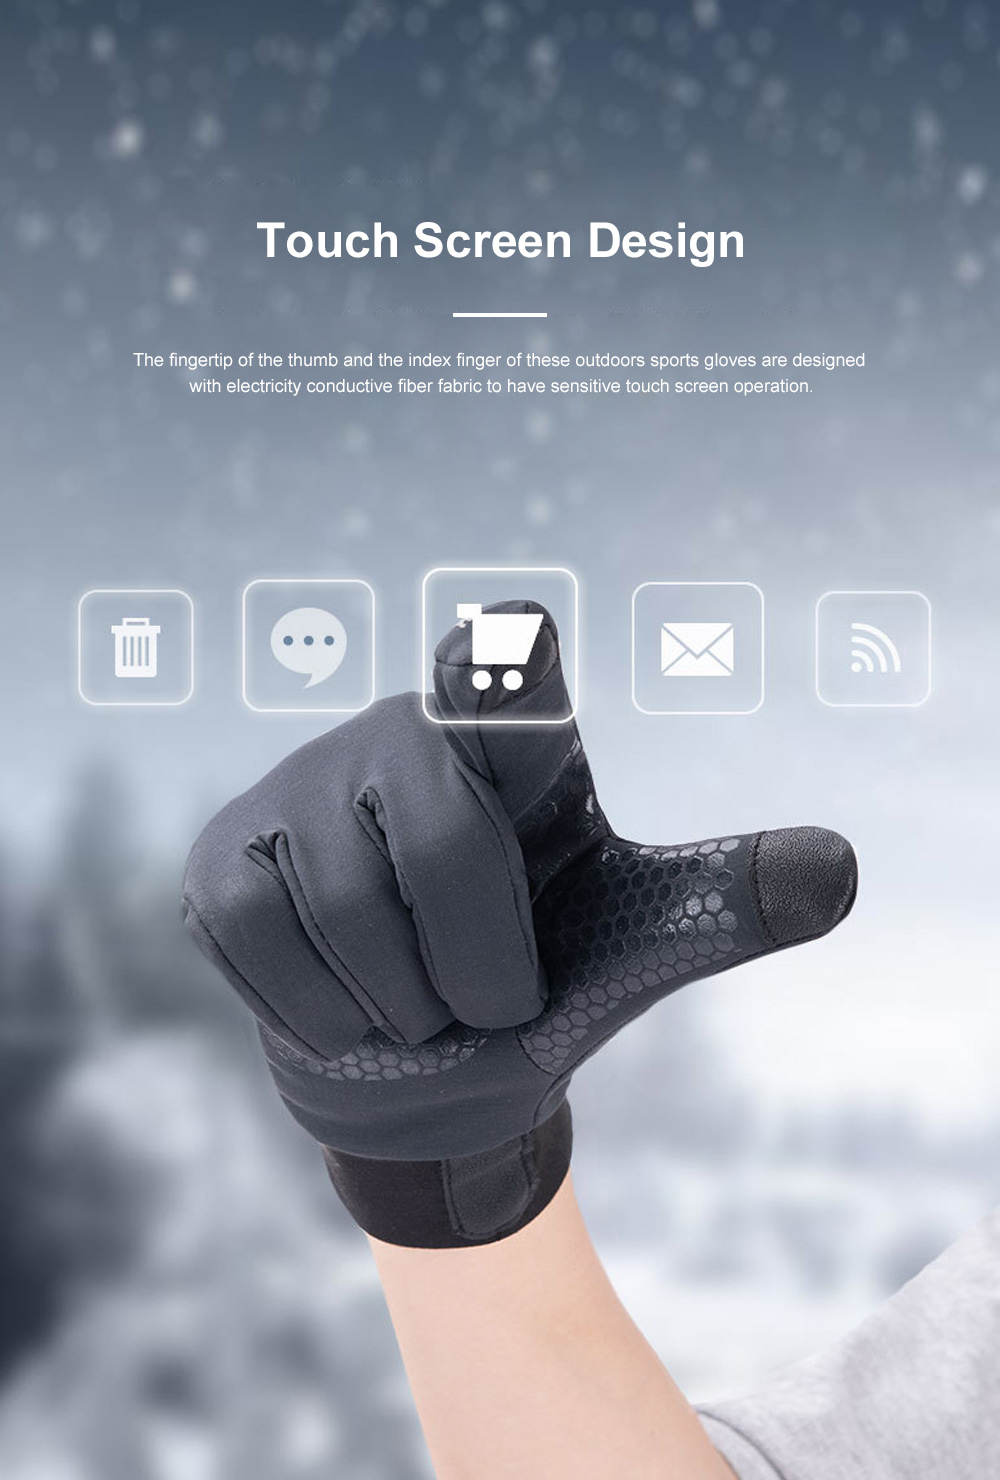 Naturehike Warm Gloves for Outdoors Running Hiking Waterproof Thermal Sports Gloves Touch Screen Designed Gloves 3